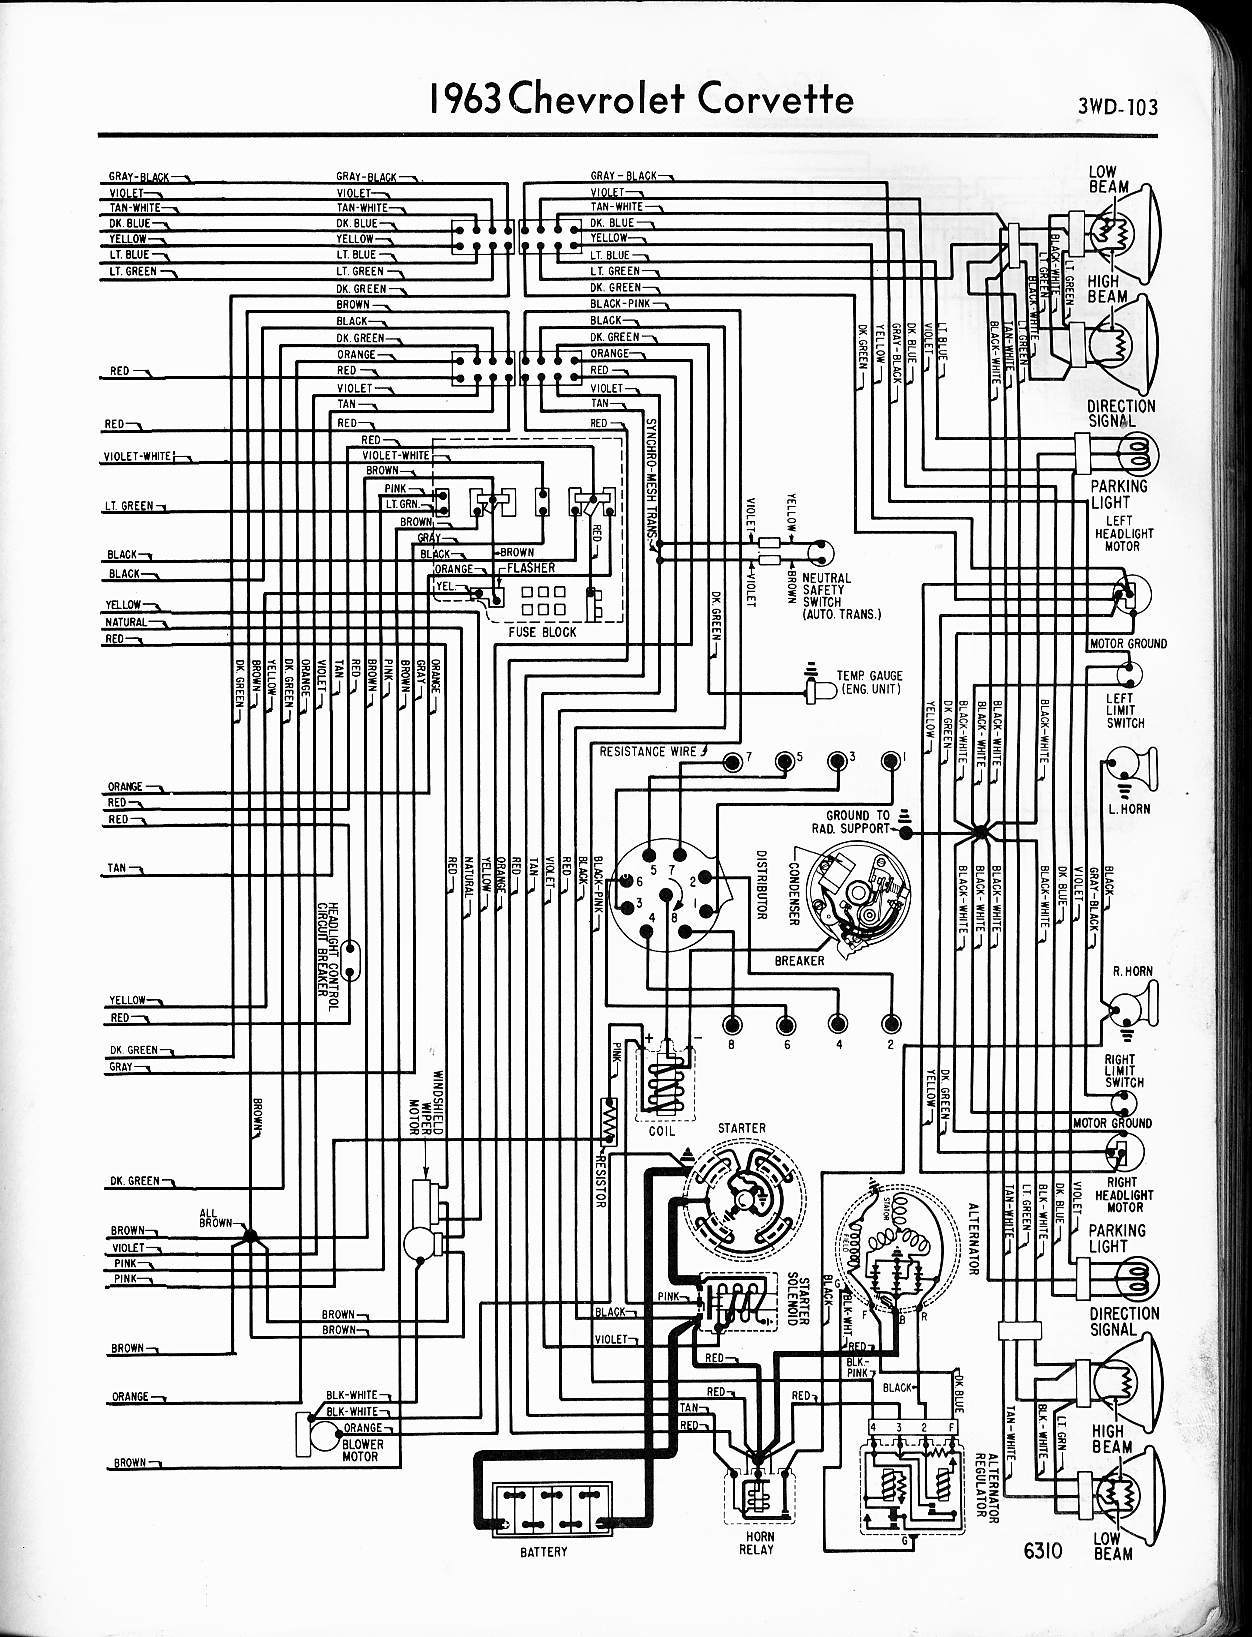 1963 corvette ac wiring diagram 1963 corvette headlight wiring diagram